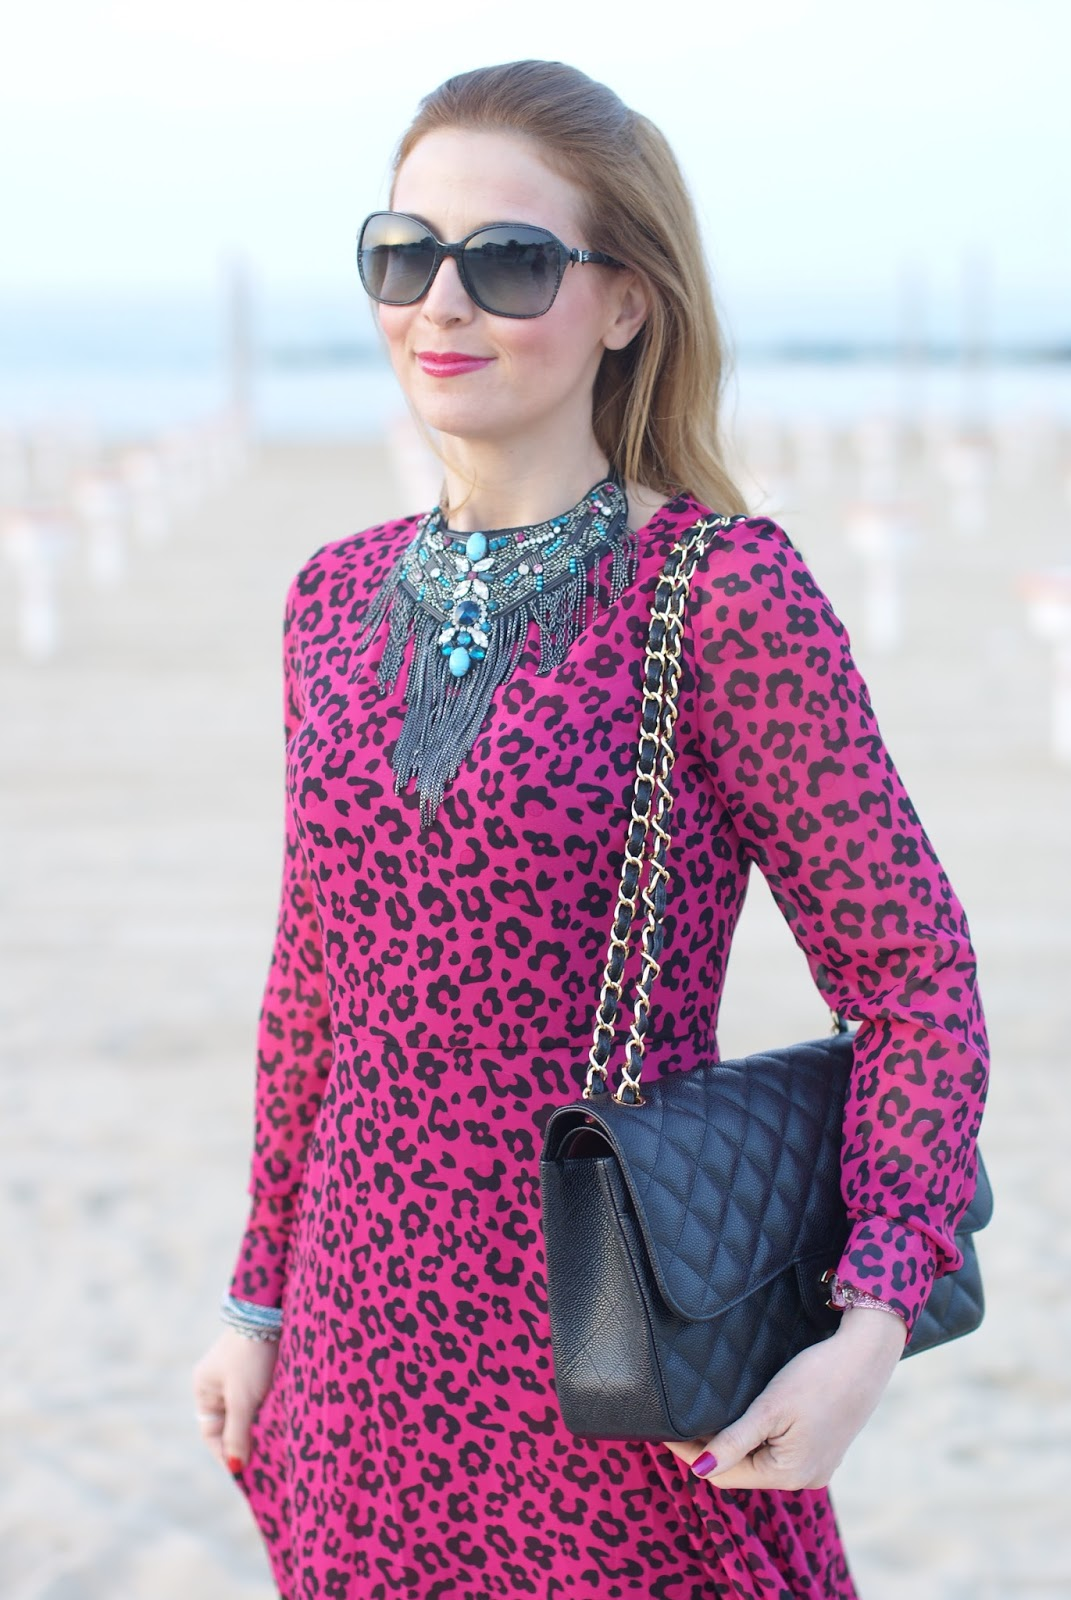 SimonaB Bijoux necklace, pink leopard dress, Fashion and Cookies fashion blog, fashion blogger style